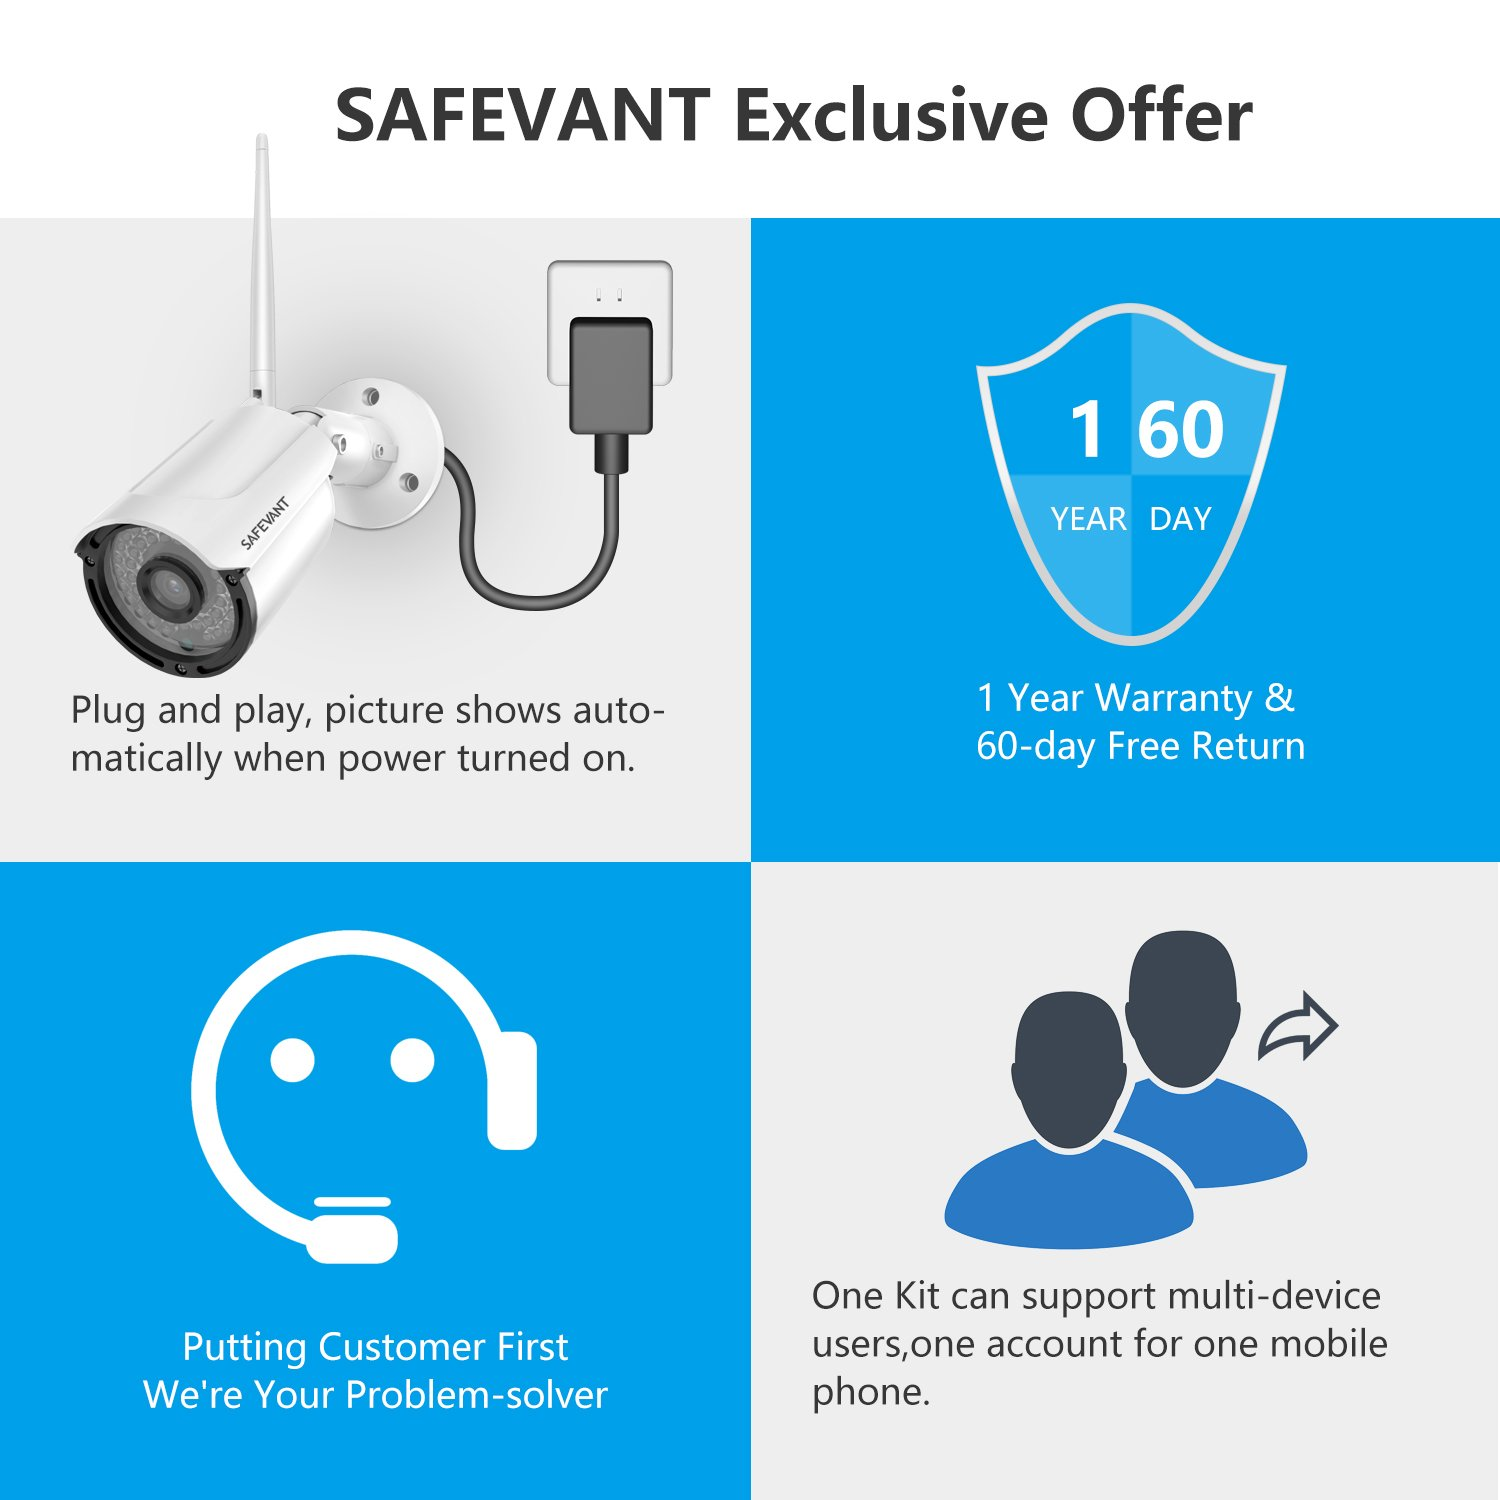 1080P NVR Security Camera System Wireless,Safevant 8CH 1080P Wireless Home Security Camera System 1TB Hard Drive ,8PCS 960P Indoor Outdoor IP66 Wireless Security Cameras,P2P,No Monthly Fee